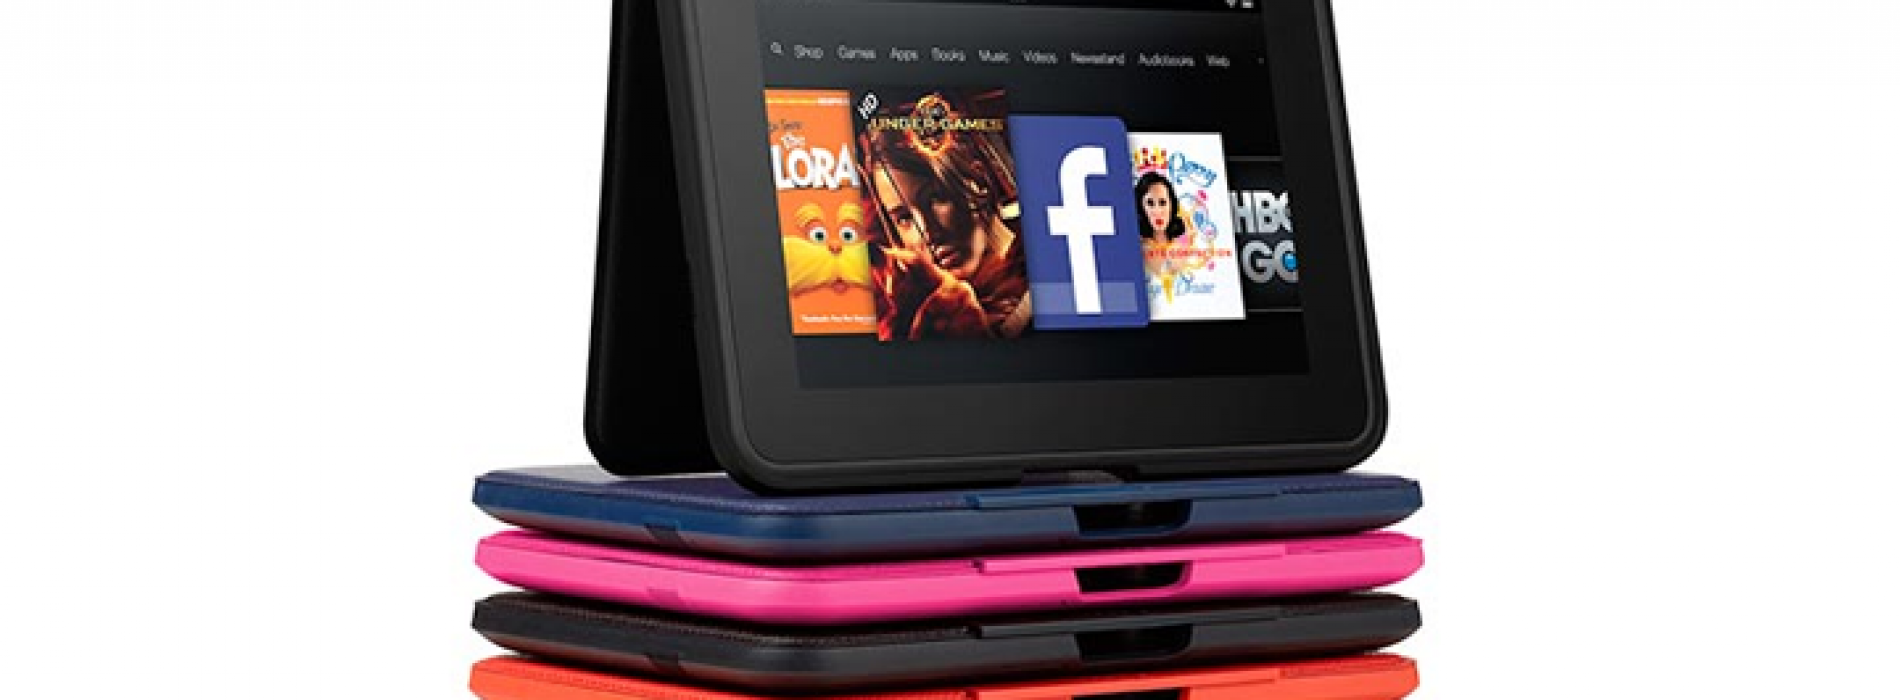 Amazon Kindle Fire HD only $159 in limited-time sale